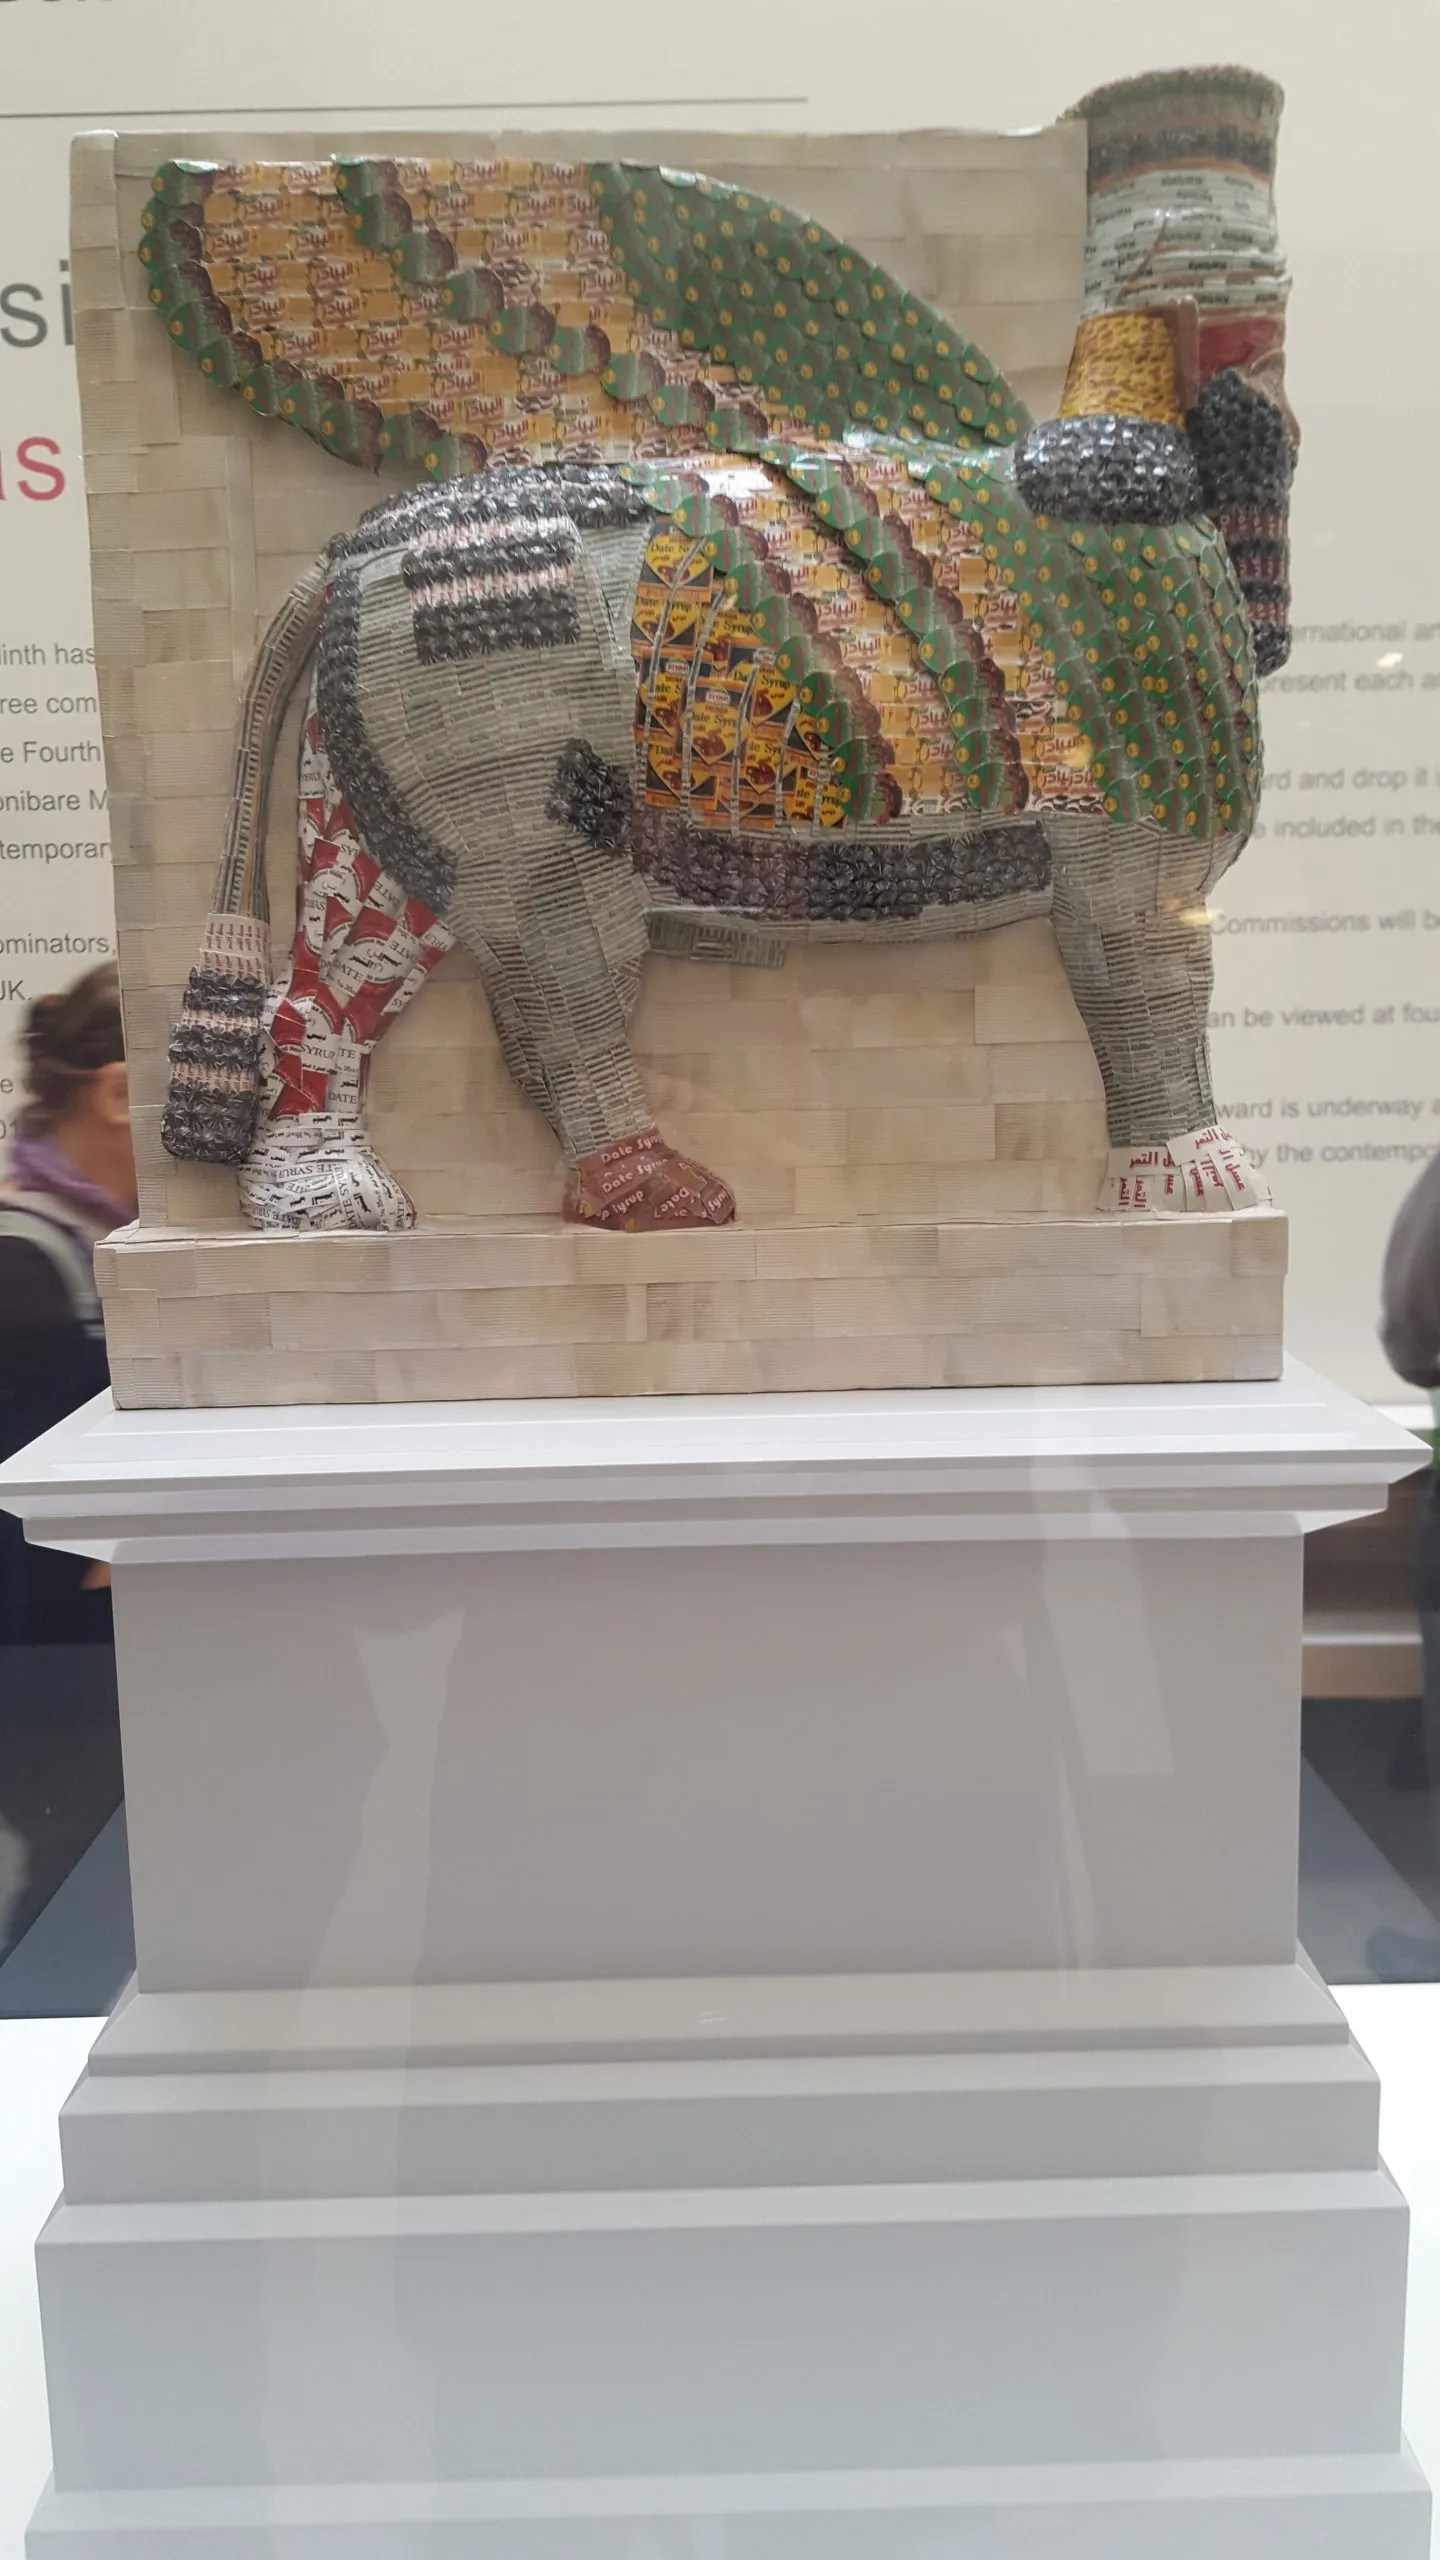 FOURTH PLINTH AND THE WINNERS ARE ……